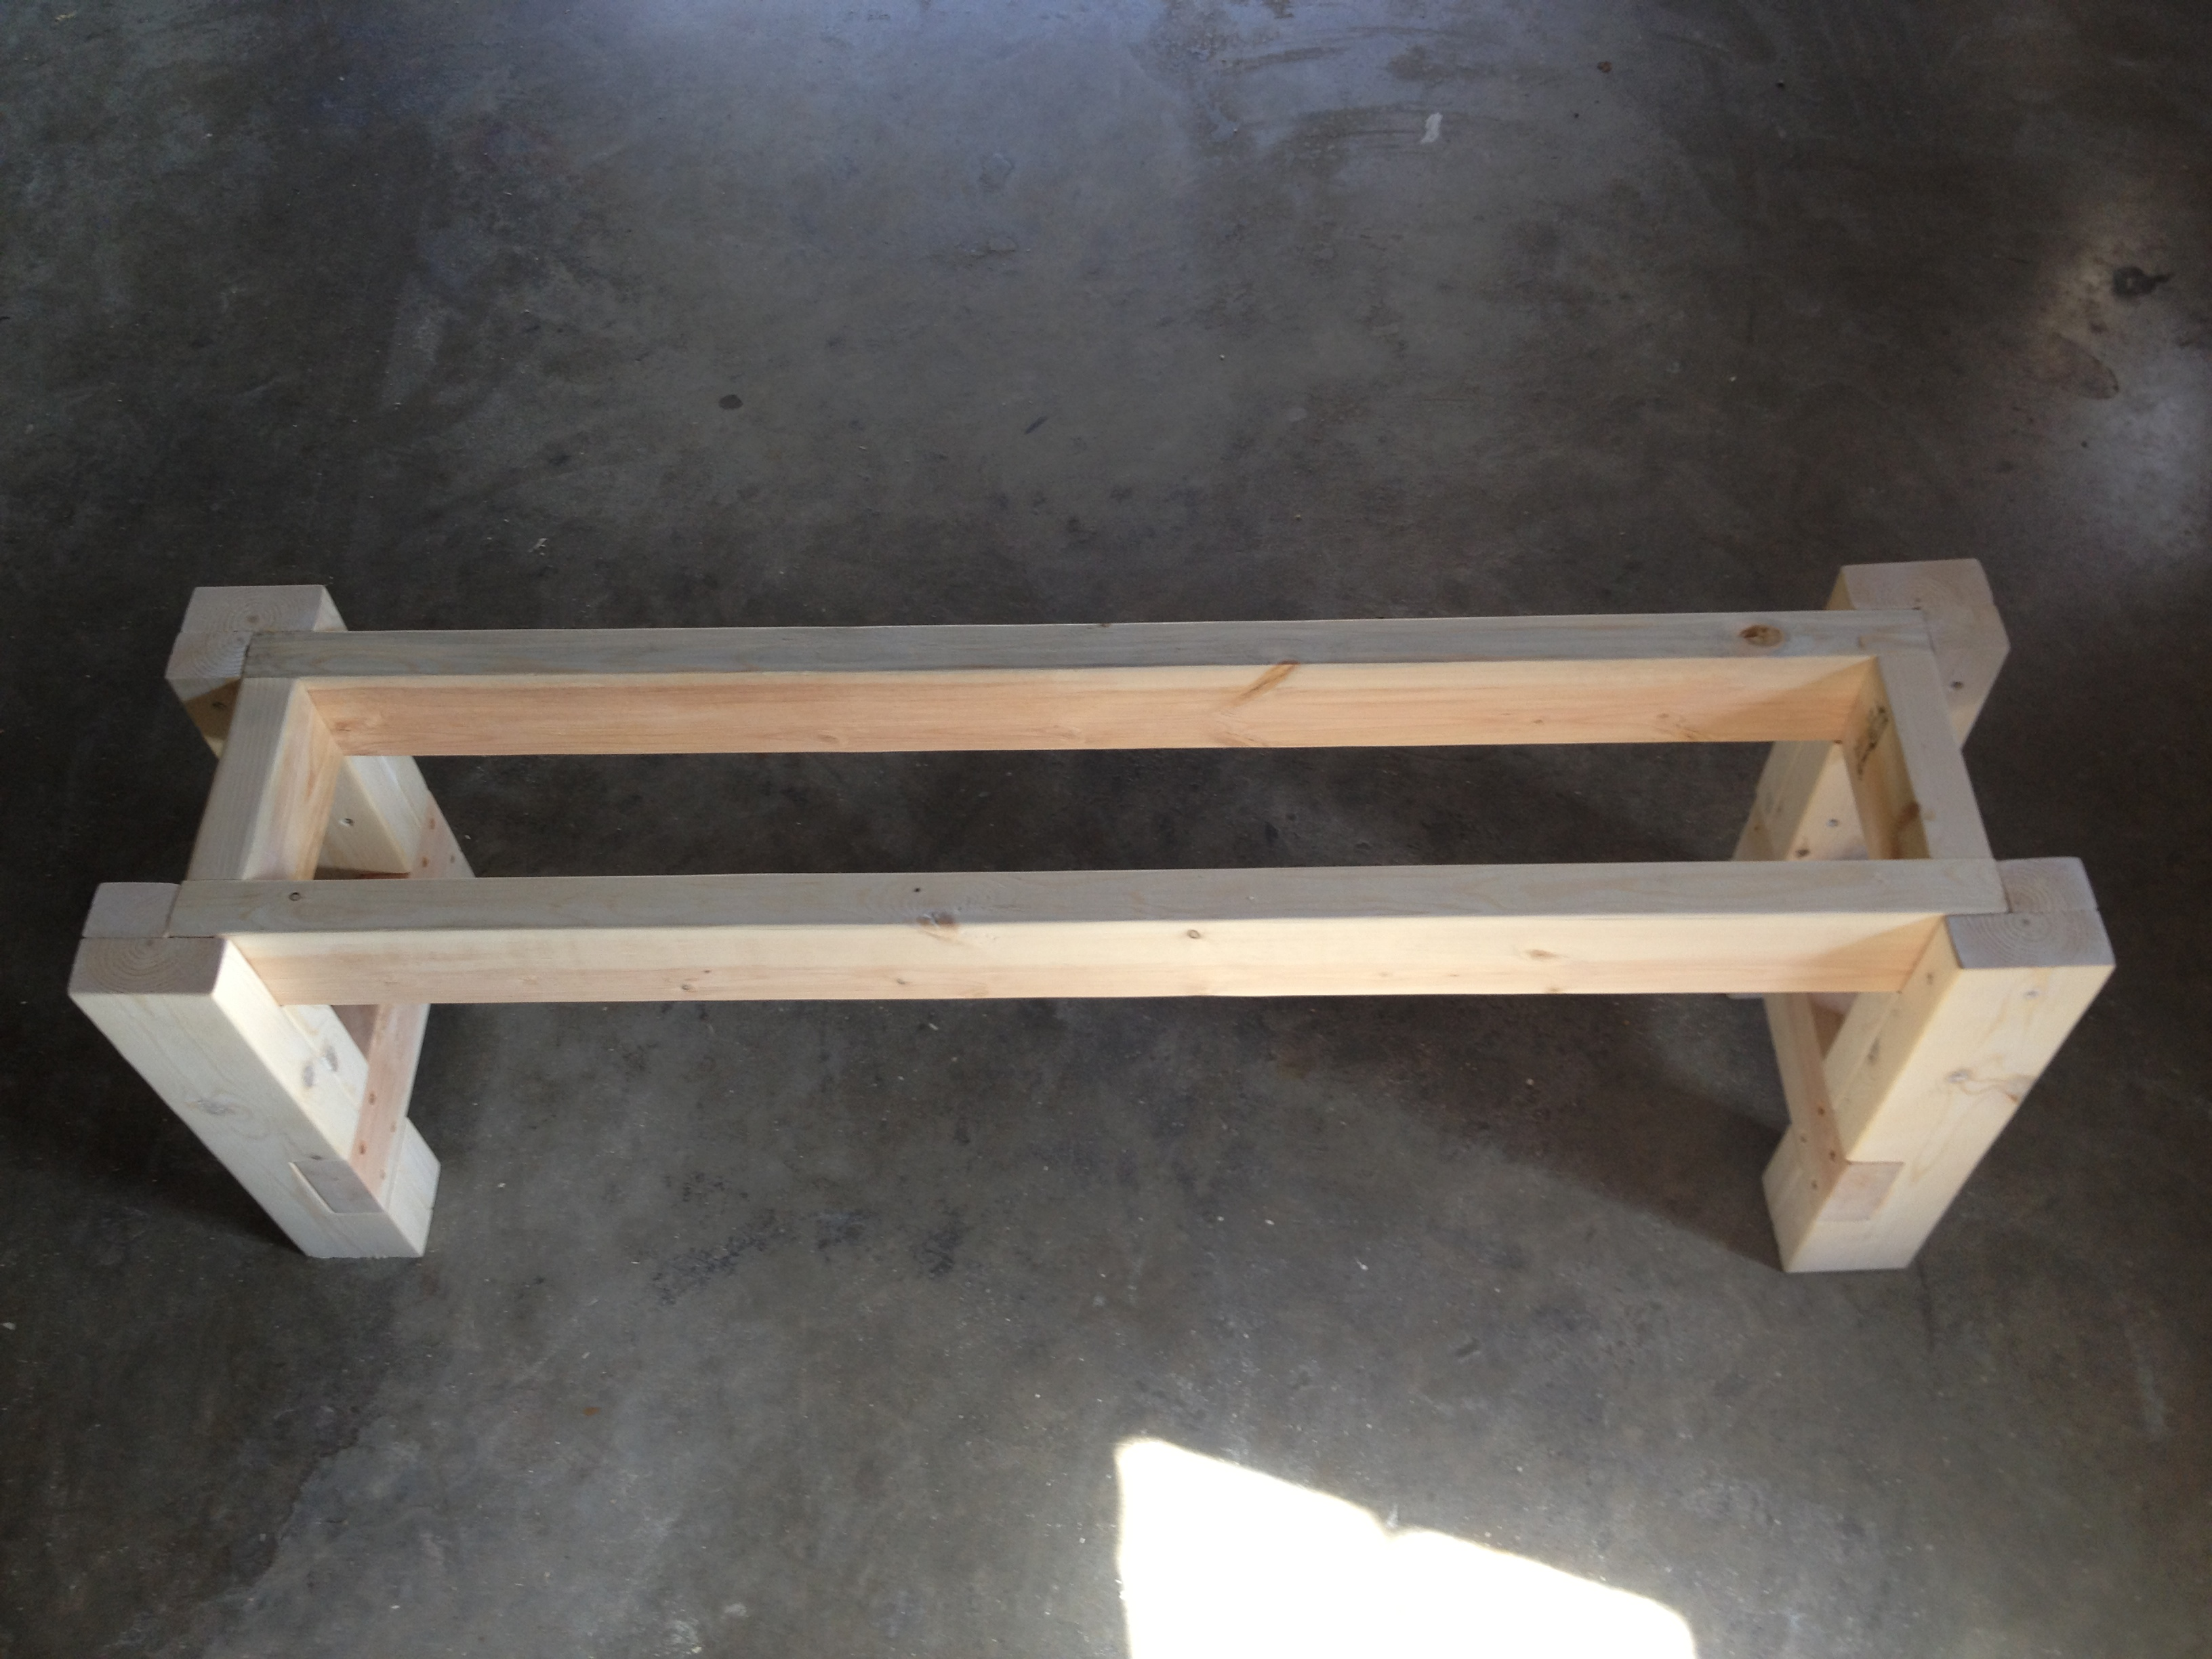 Farmhouse bench woodworking plans woodshop plans - Testing The Bench Support For Fit And Squareness Before Gluing And Screwing